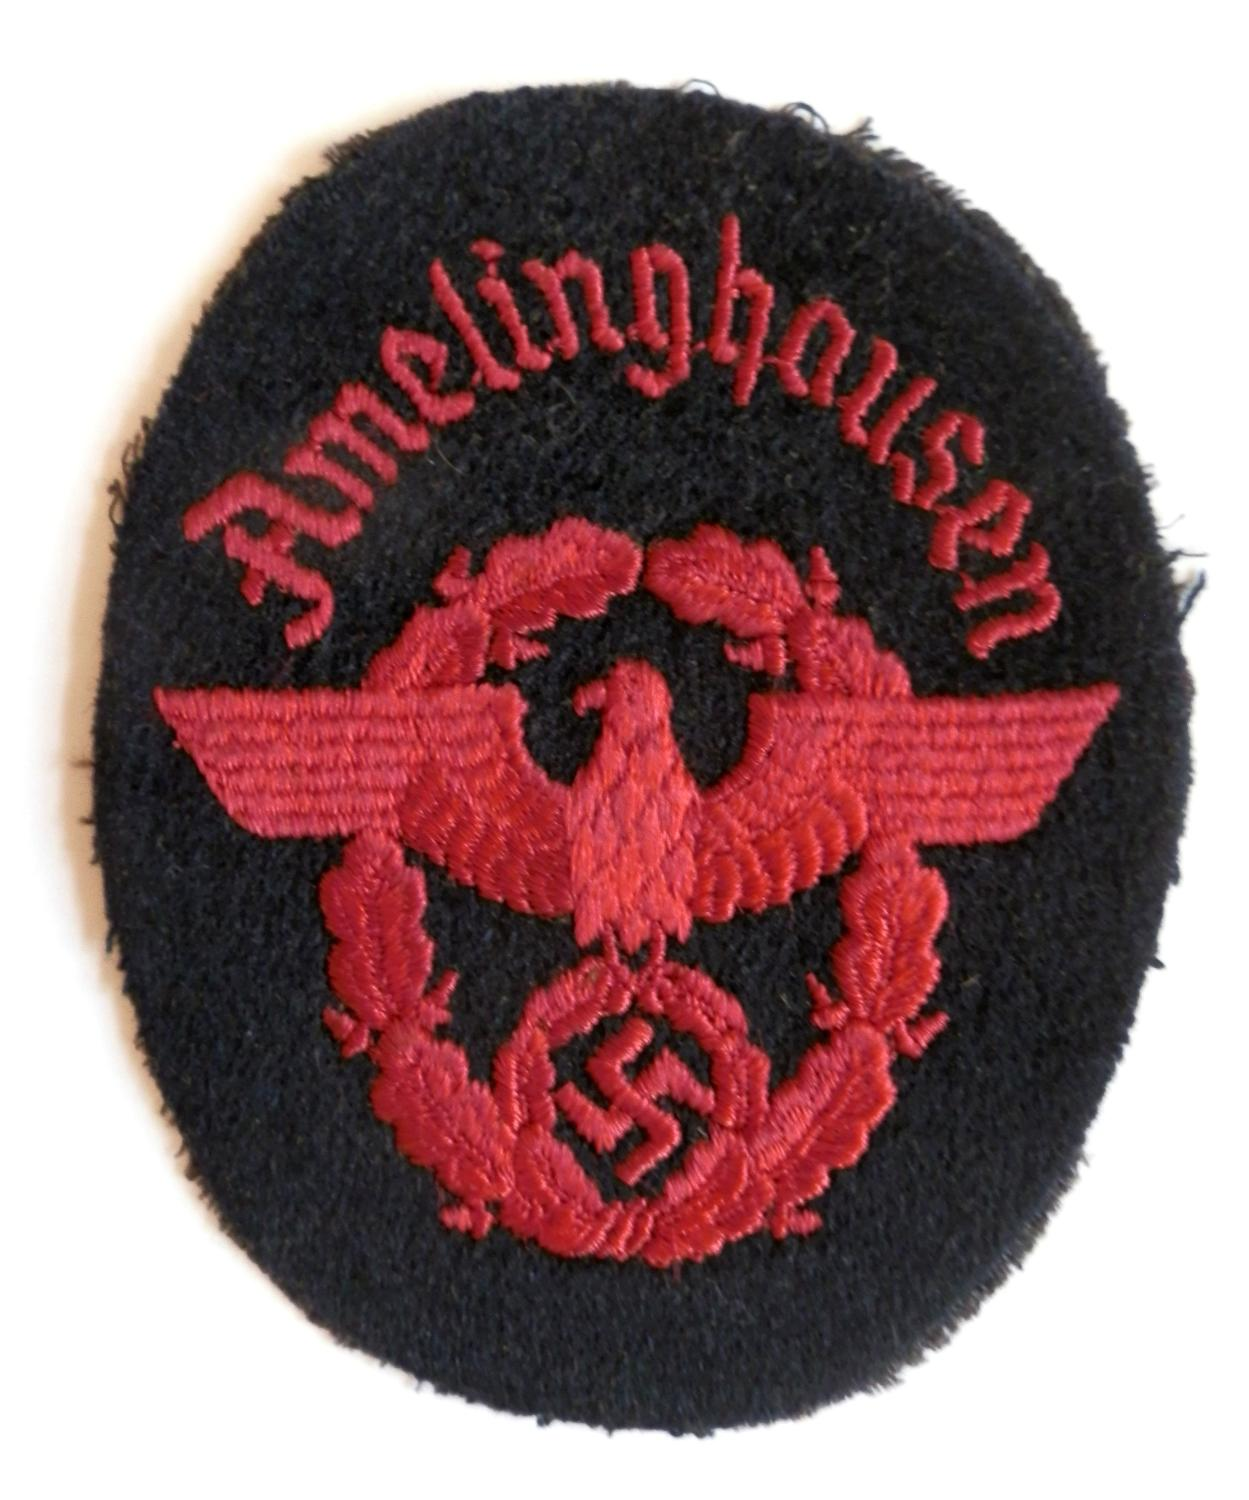 Third Reich Police Sleeve Badge.